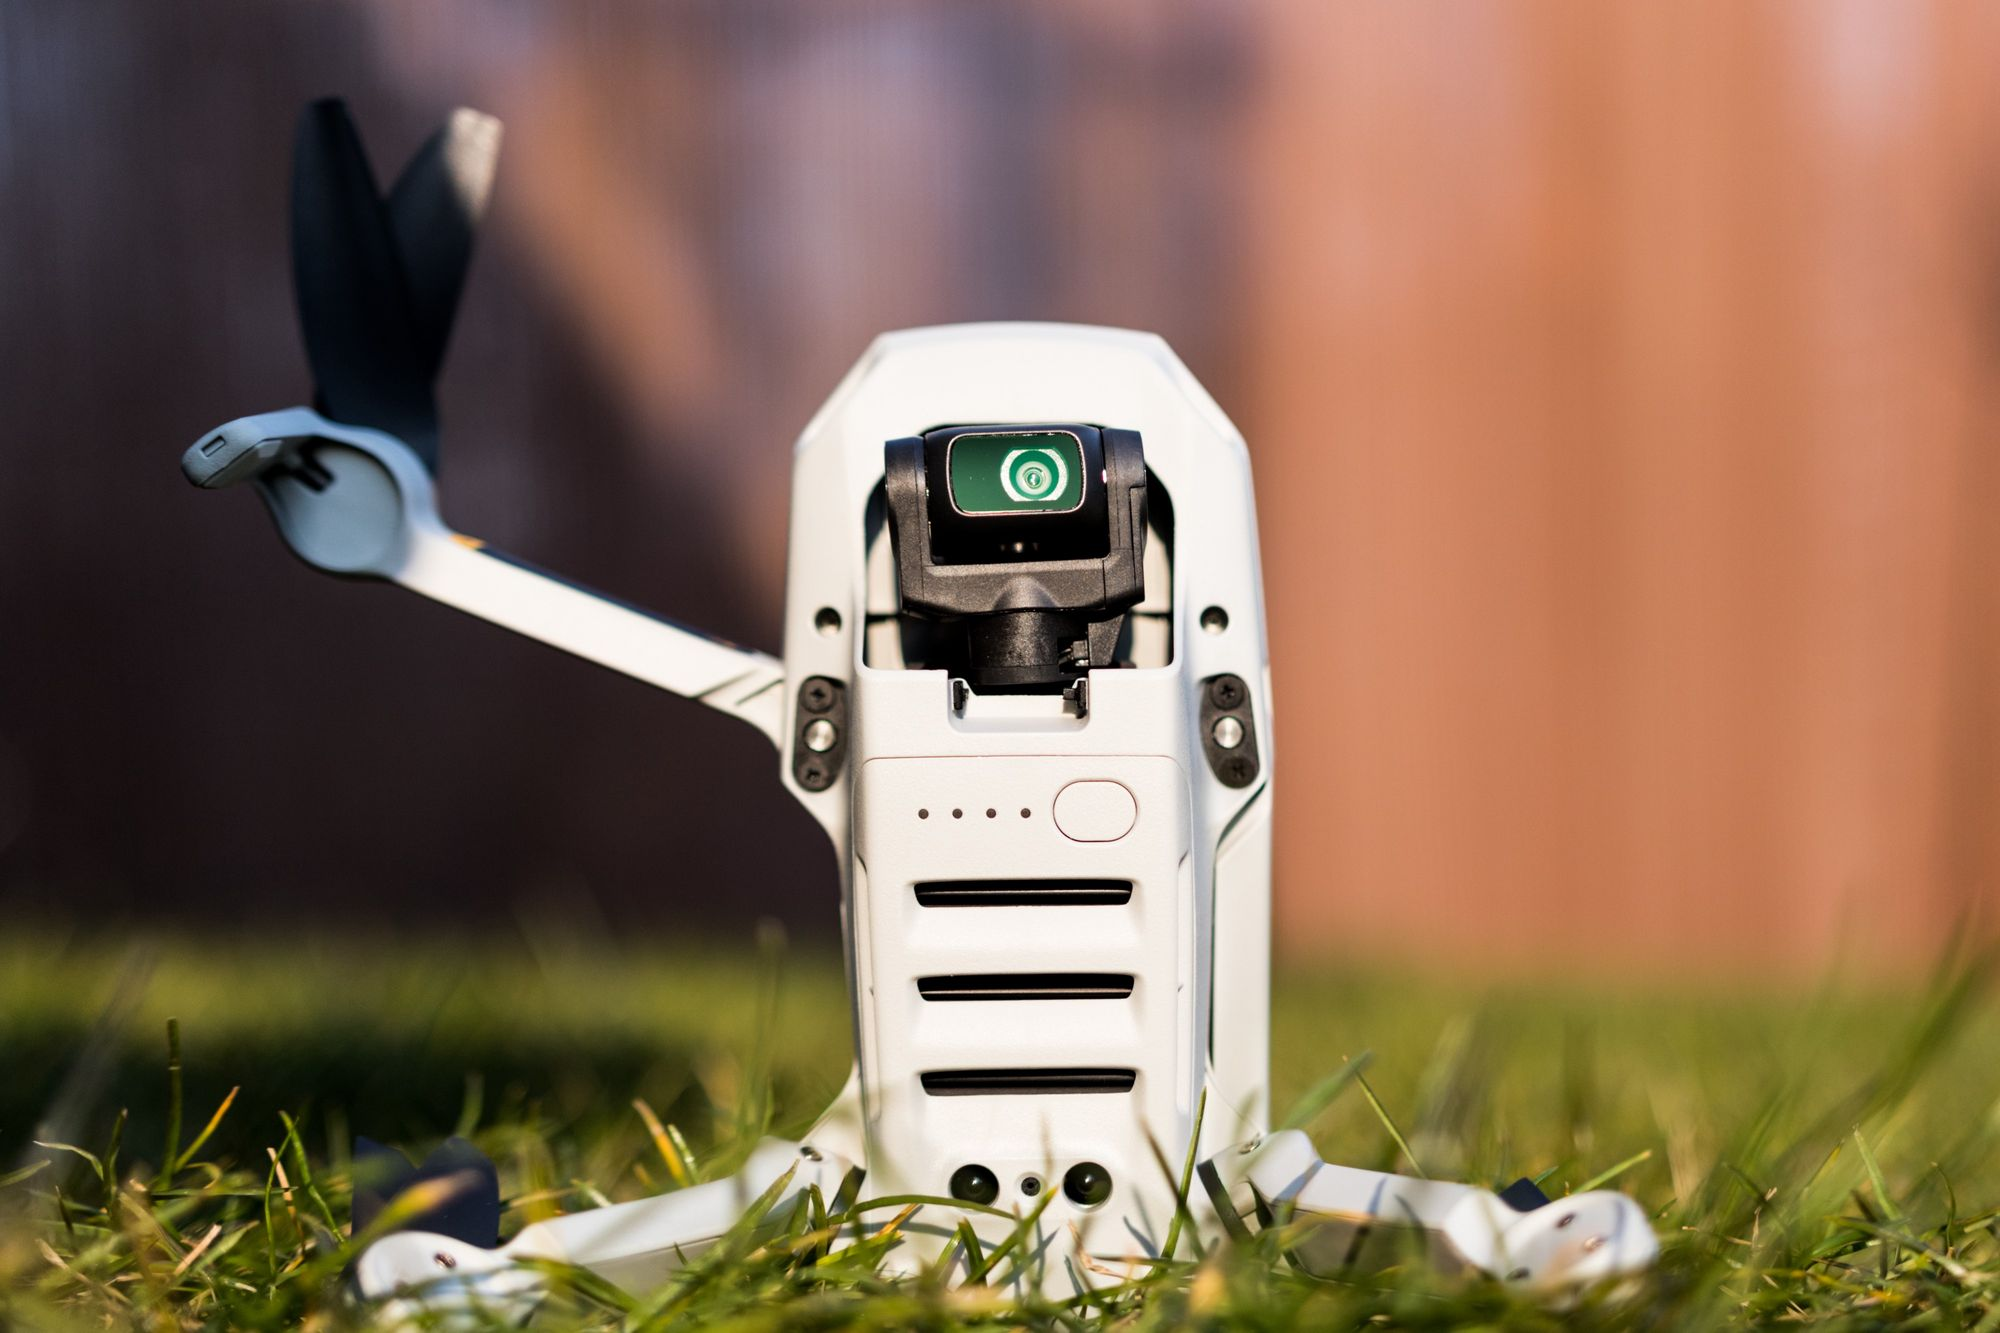 5 Spots You Should Never Start Flying Your DJI Drone From—Solutions